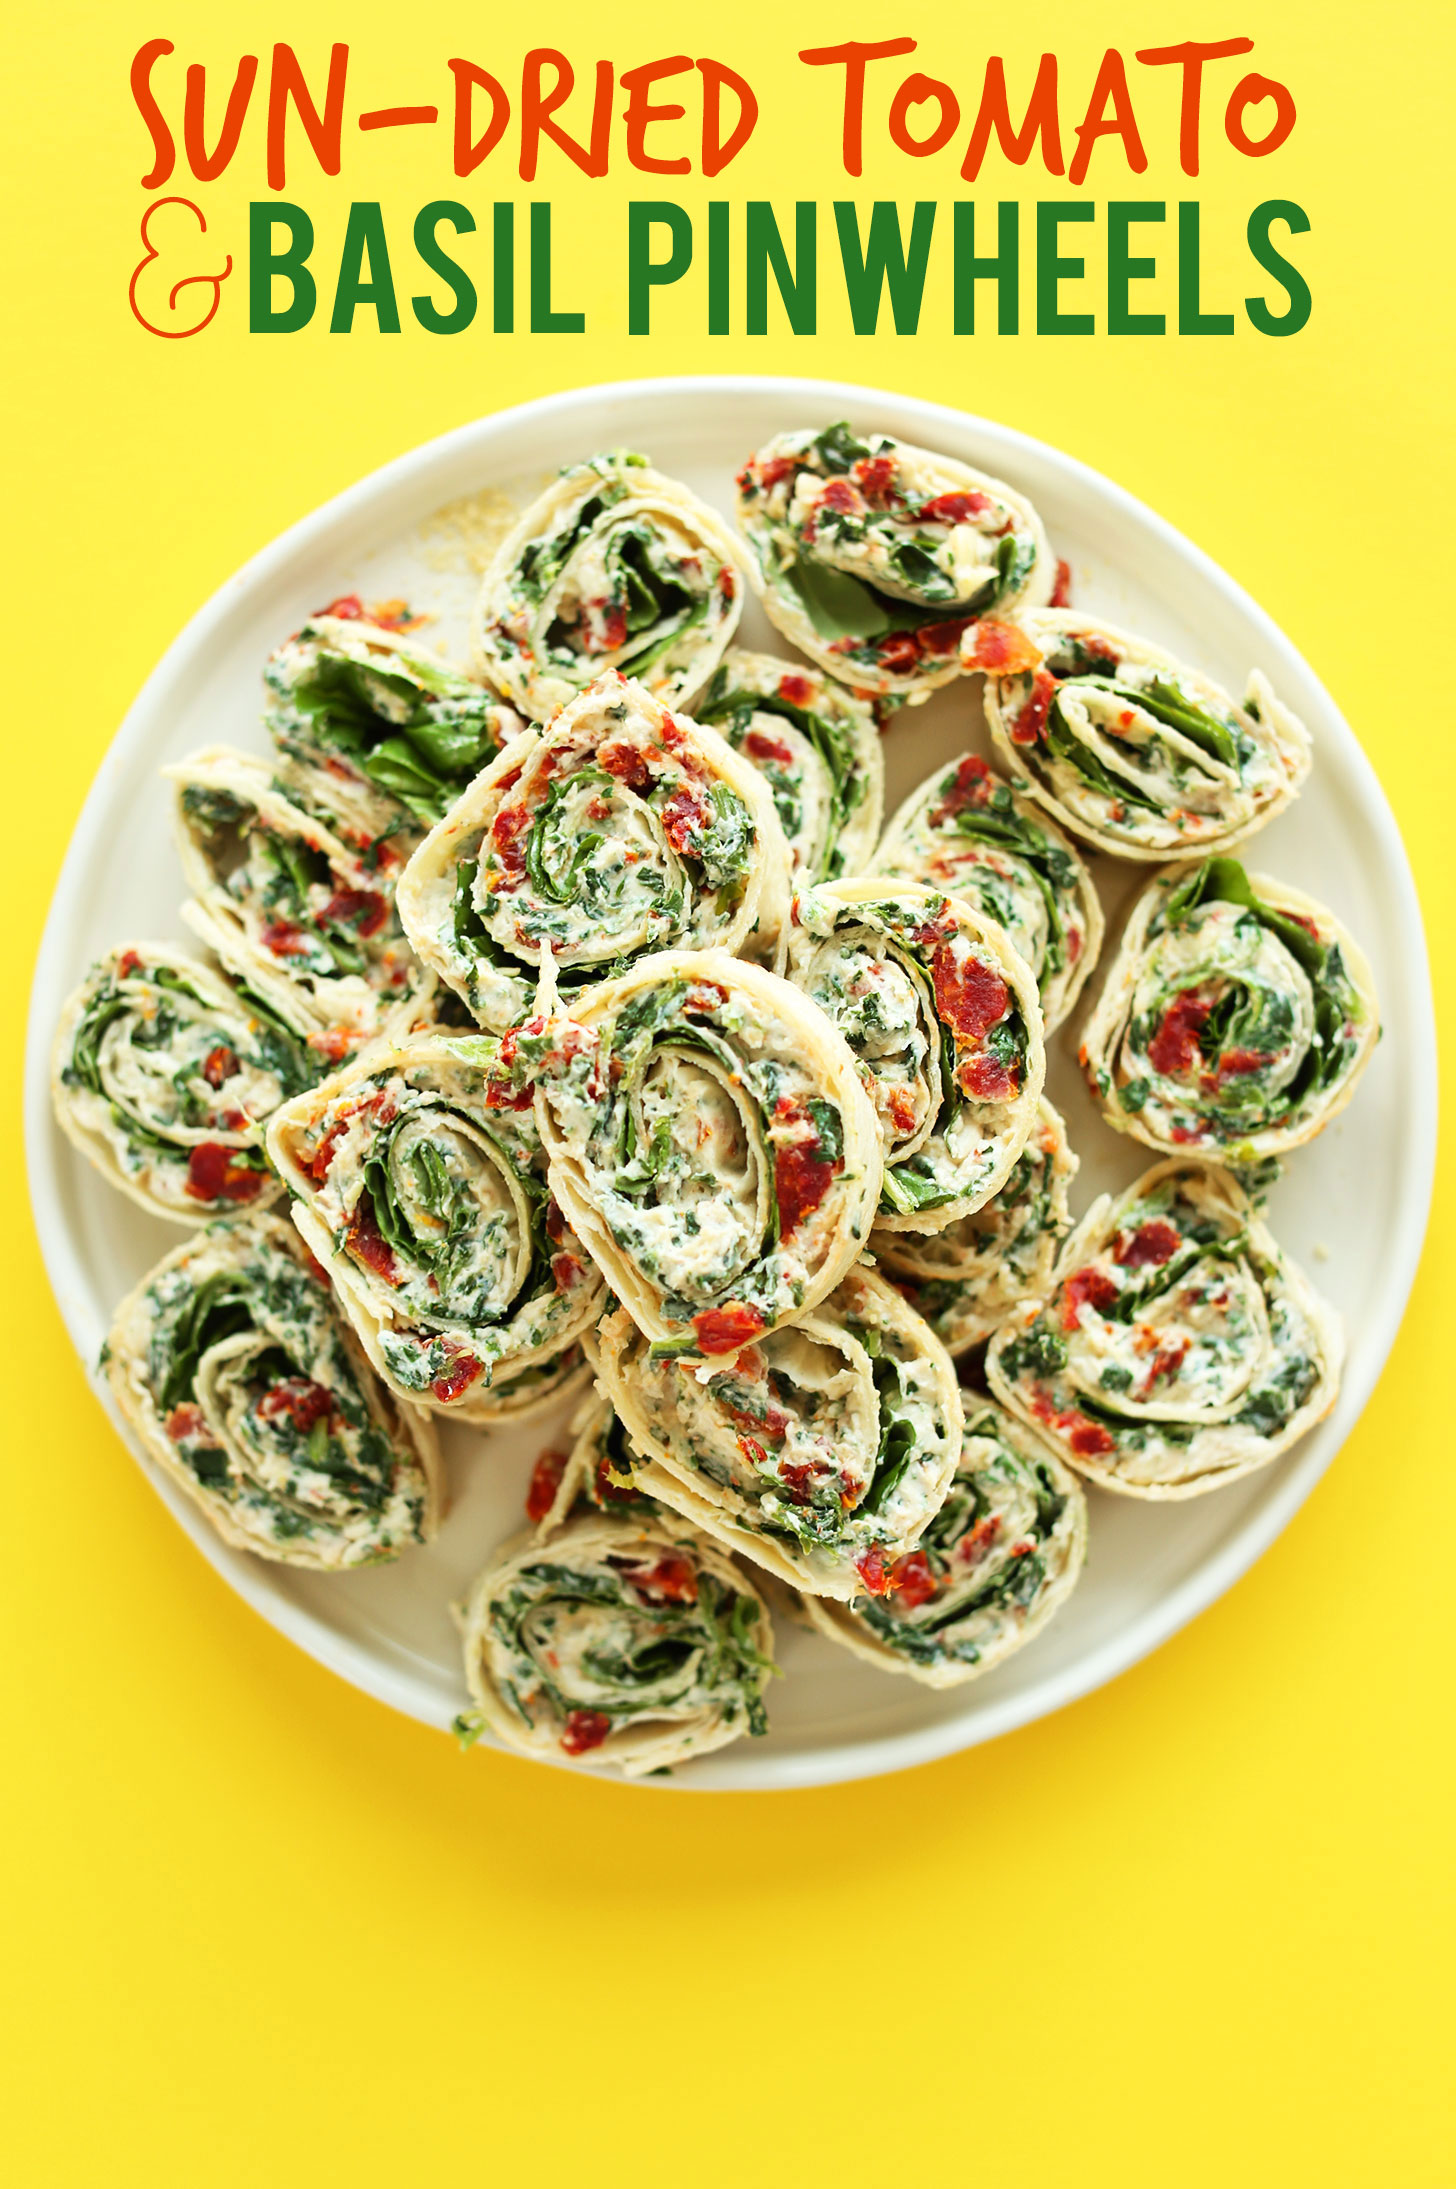 Sun-Dried Tomato and Basil Pinwheels stacked on a plate for a vegan party appetizer